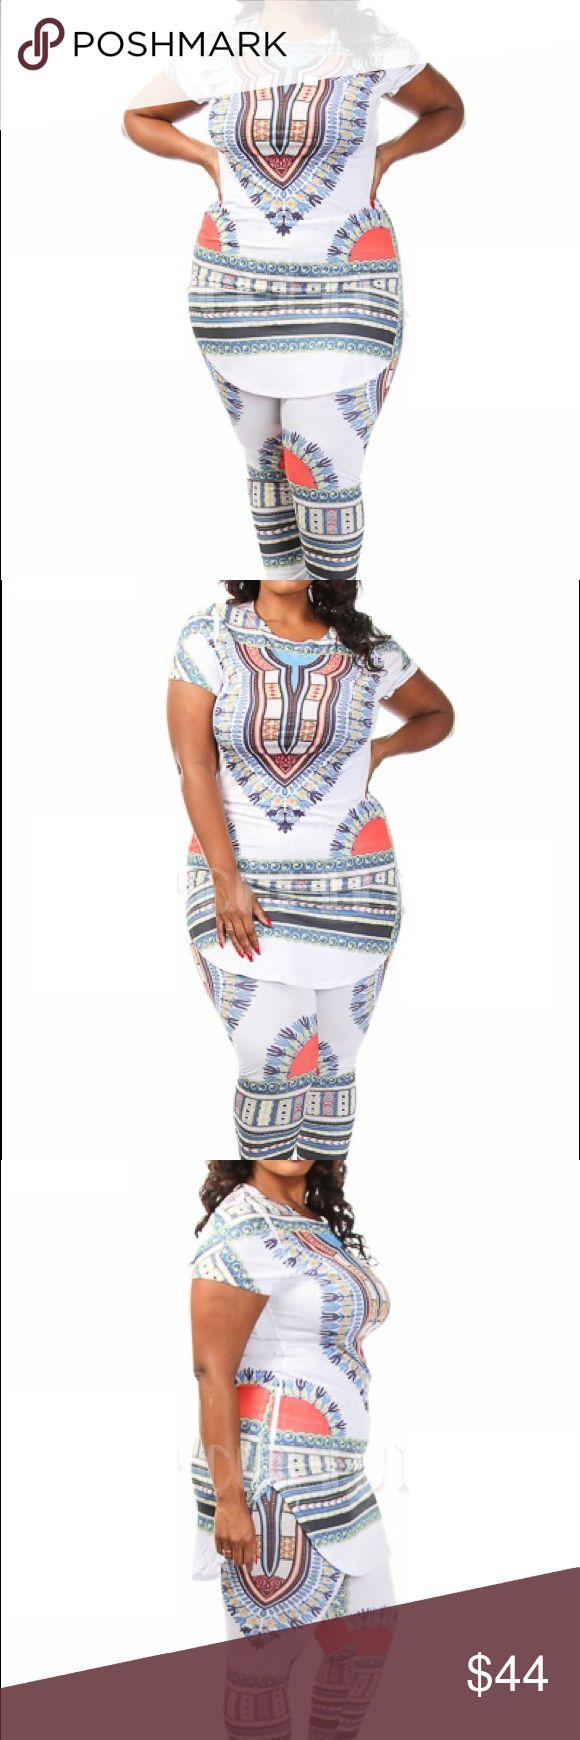 NWT Plus Size Dashiki Print Leggings and Top Set 95% Polyester 5% Spandex. Made in USA. Model wearing 3X. Fits true to size. Pants Leggings